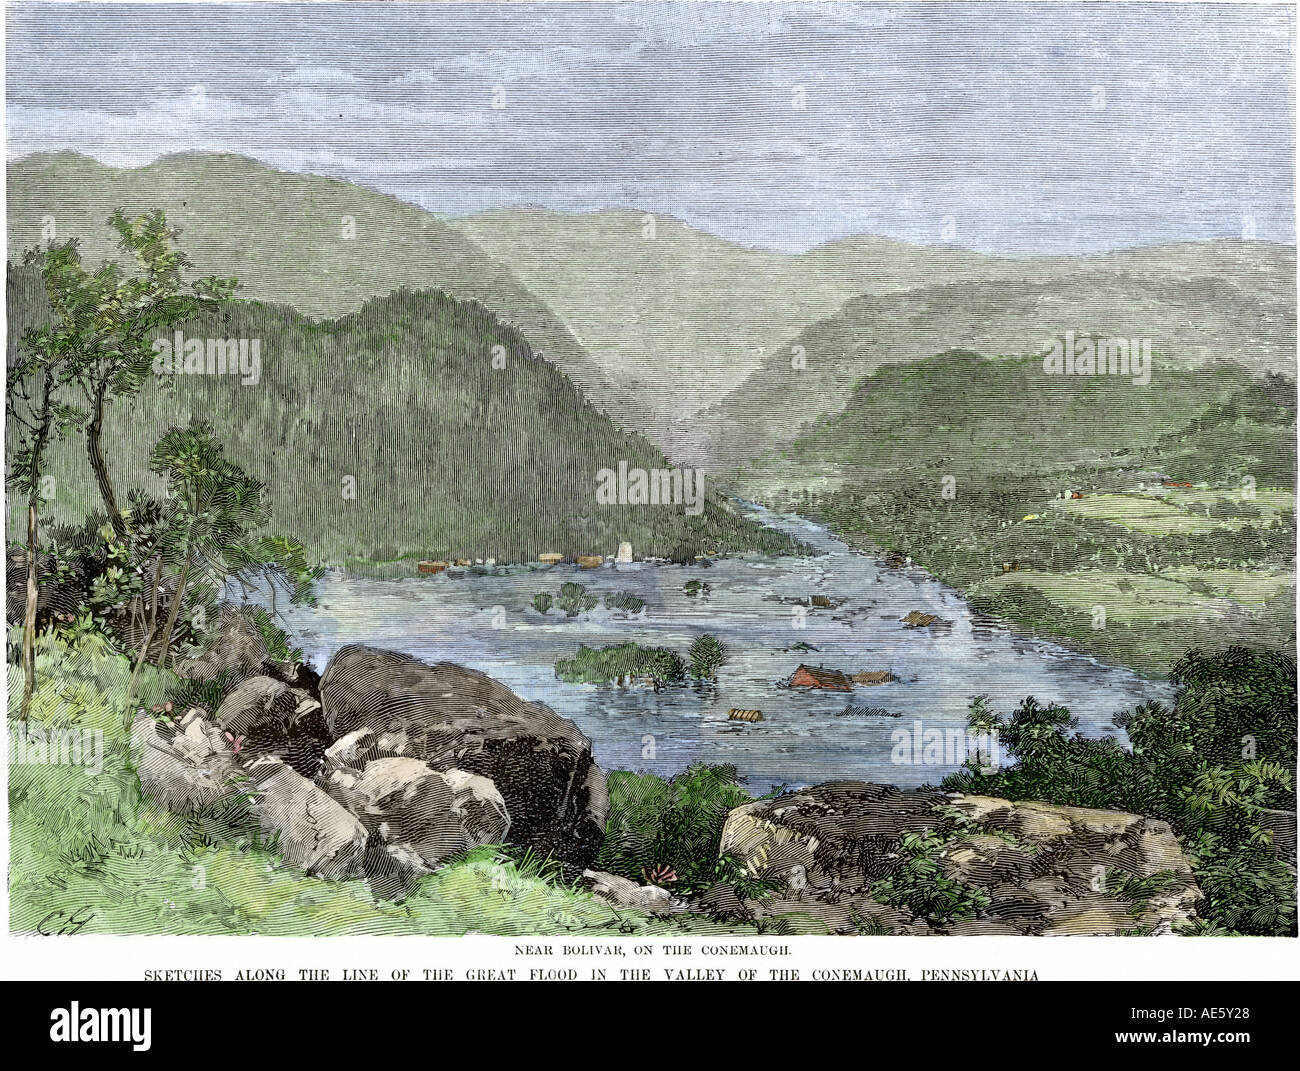 Valley of the Conemaugh River after the great flood at Johnstown Pennsylvania 1889. Hand-colored woodcut - Stock Image